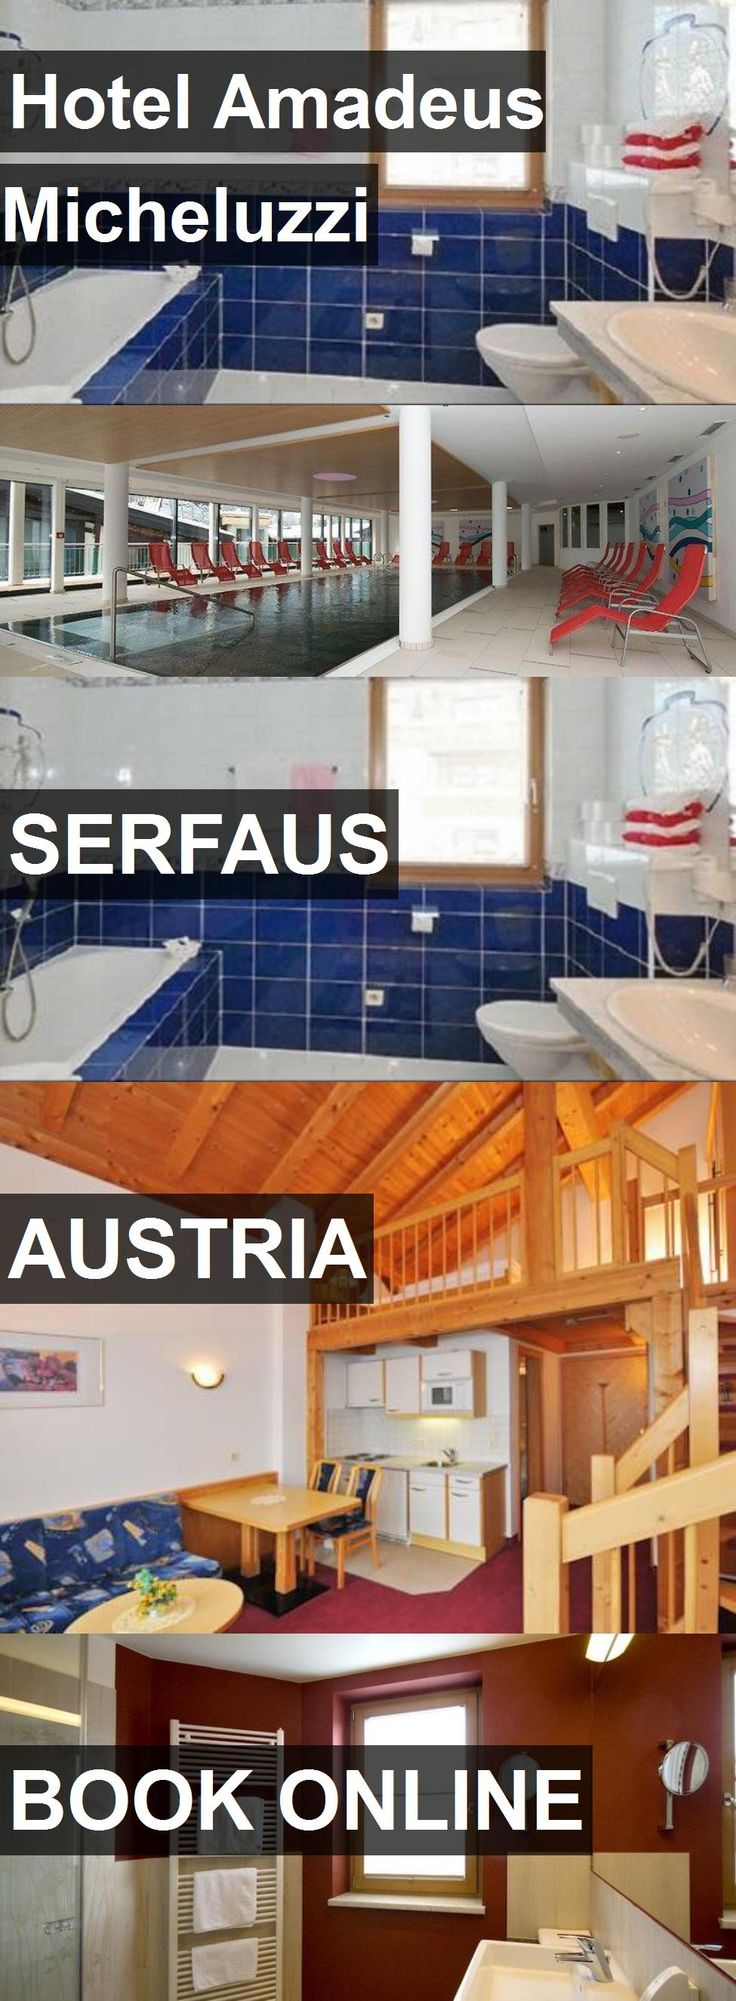 Hotel Amadeus Micheluzzi in Serfaus, Austria. For more information, photos, reviews and best prices please follow the link. #Austria #Serfaus #travel #vacation #hotel